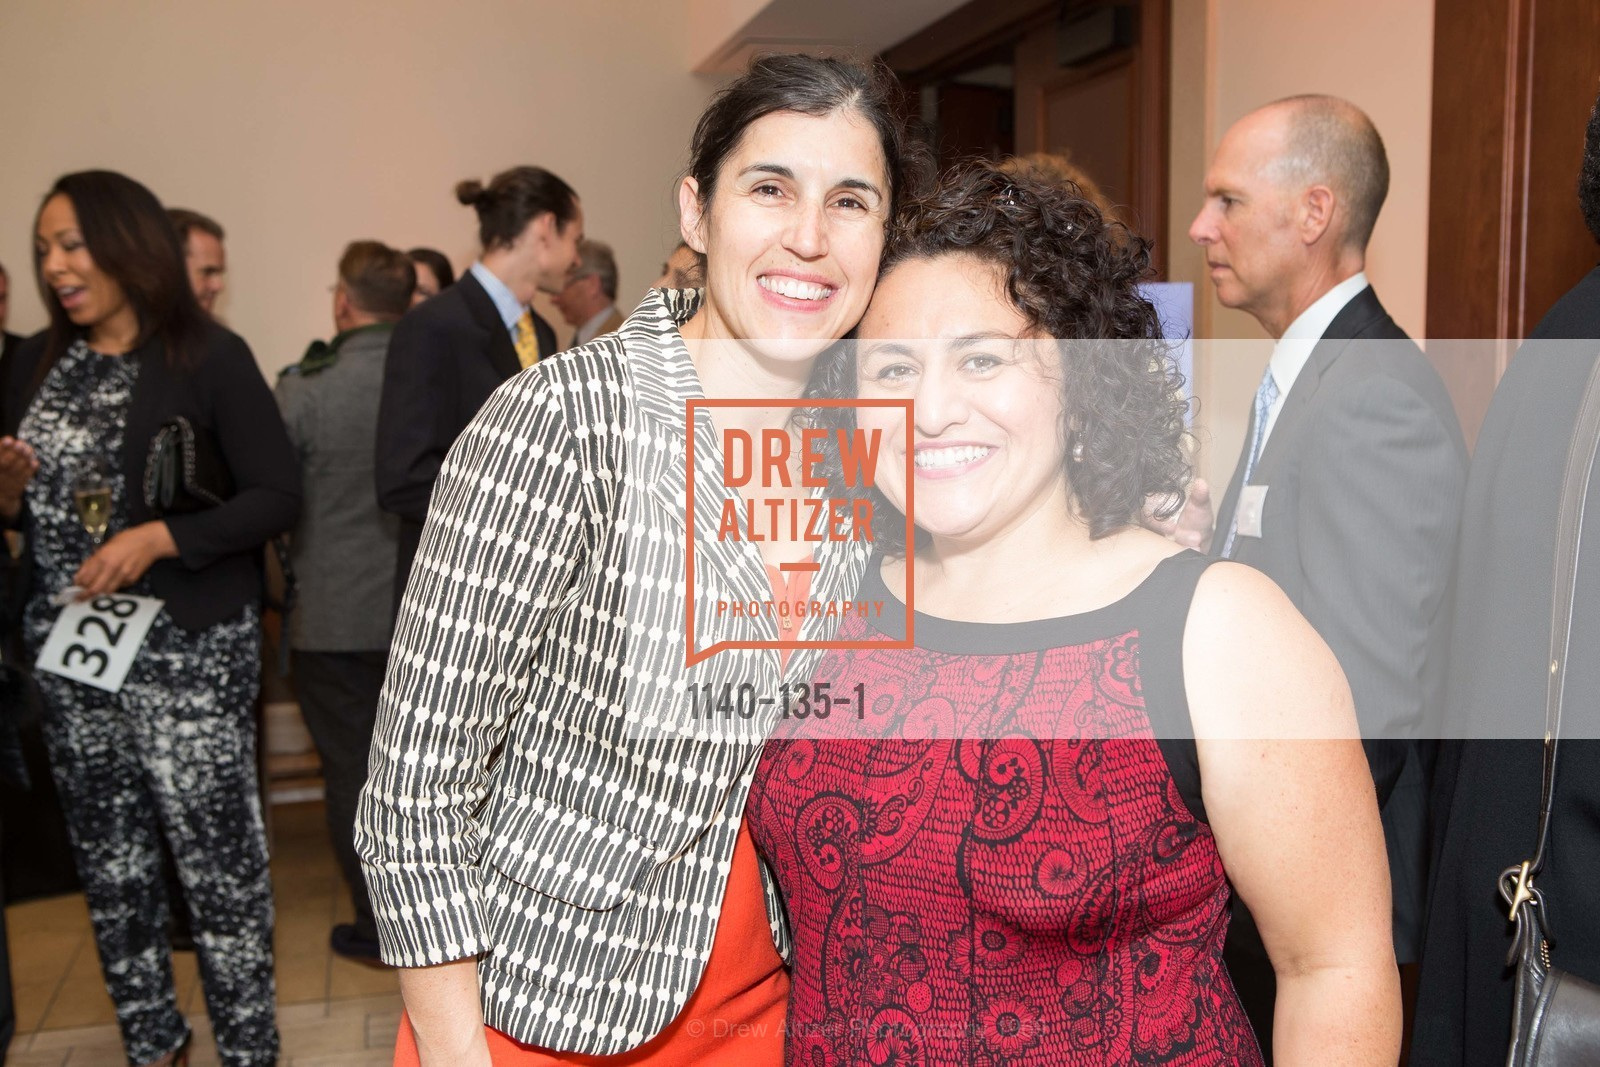 Extras, Center for Environmental Health  2015 Gala, May 27th, 2015, Photo,Drew Altizer, Drew Altizer Photography, full-service agency, private events, San Francisco photographer, photographer california